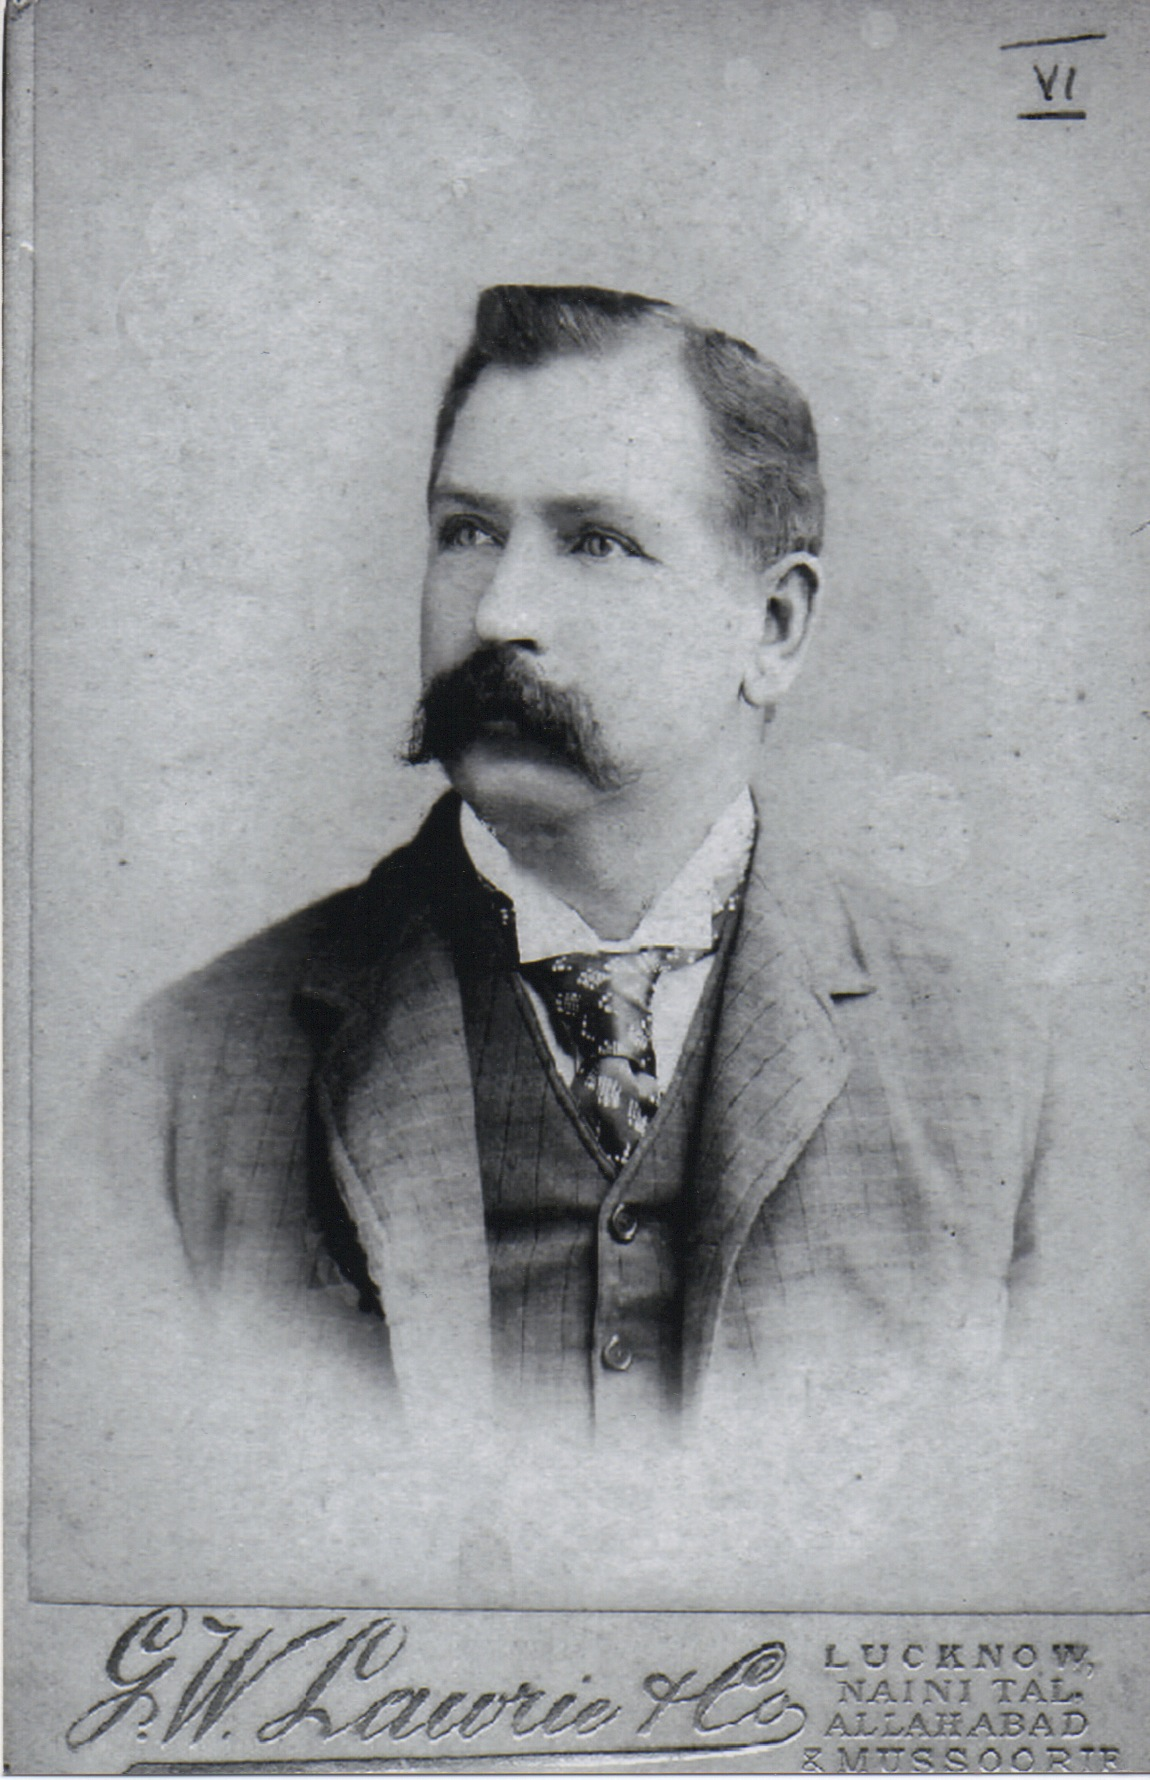 William Claxton Peppé